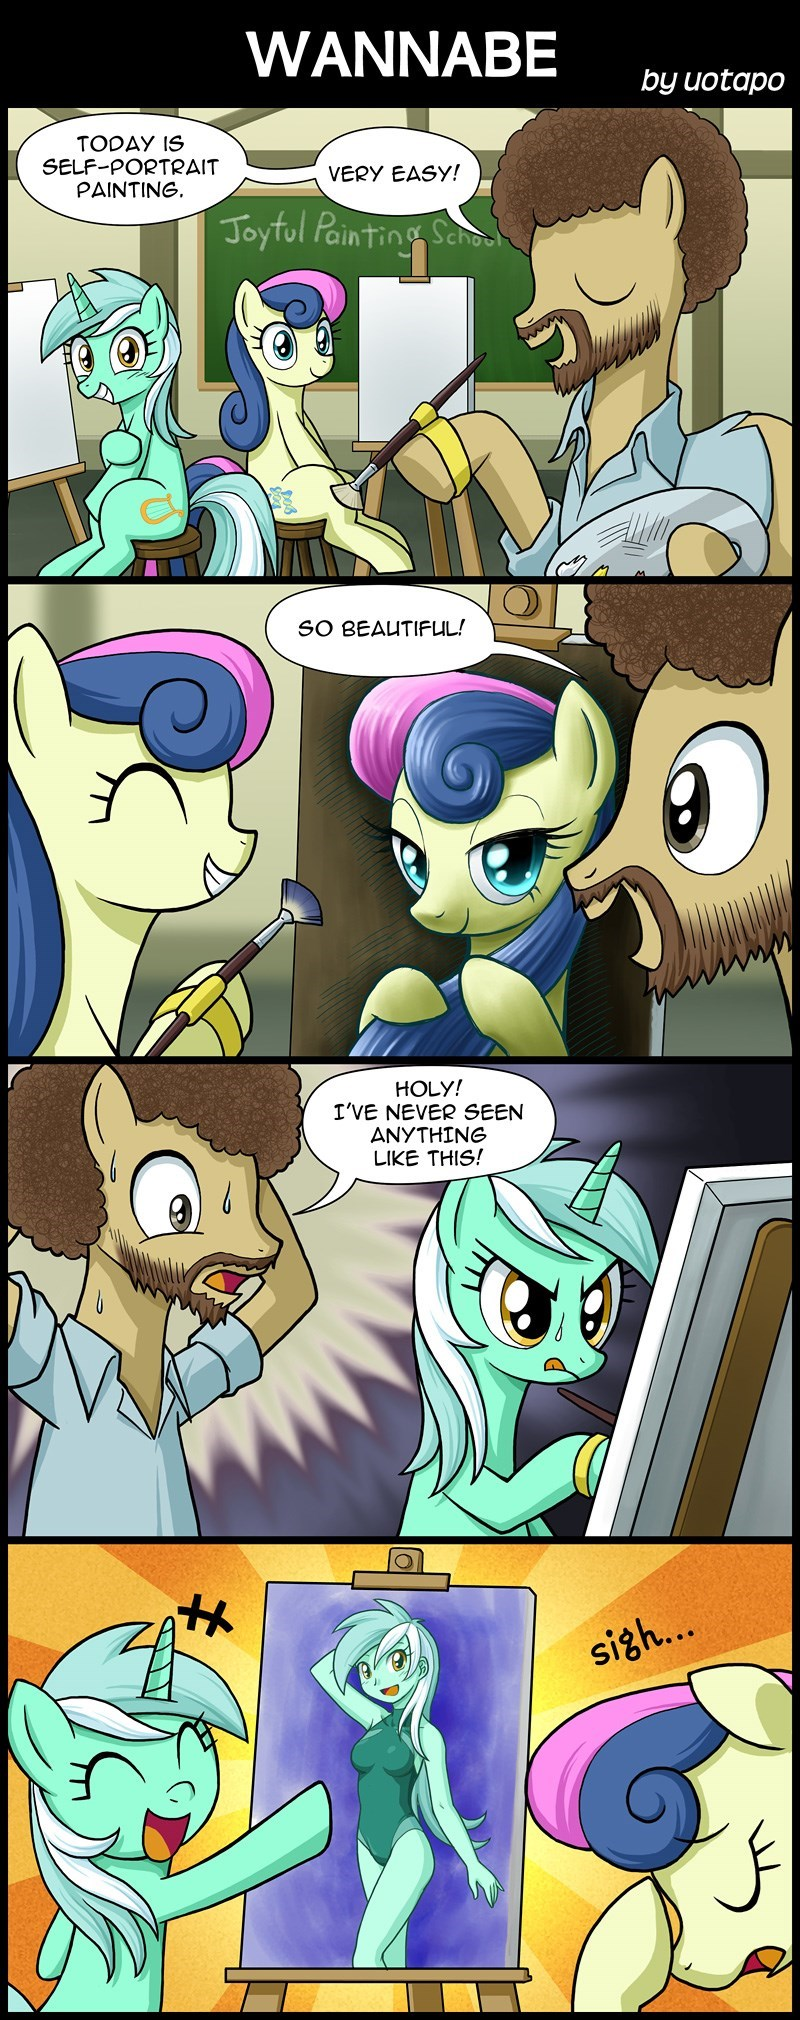 equestria girls lyra heartstrings uotapo bob ross comic bon bon - 9099817728